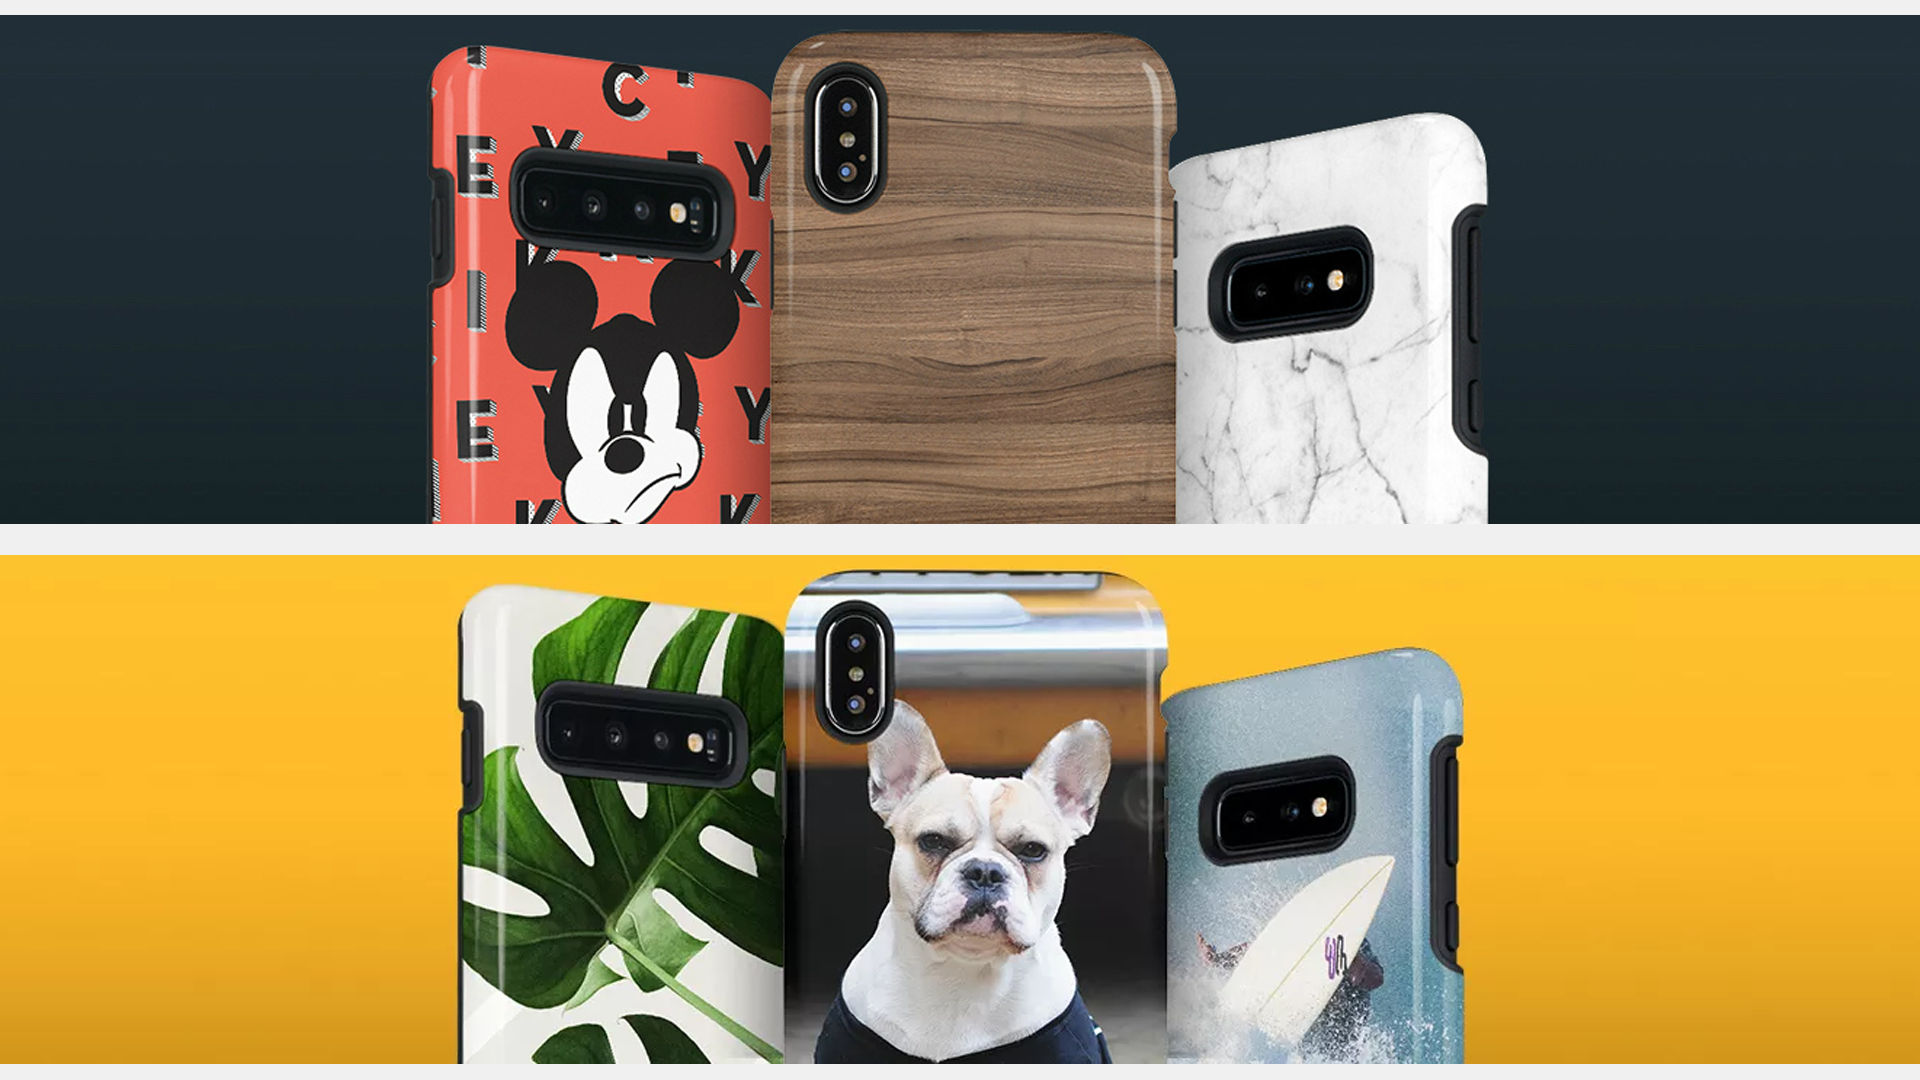 Six custom phone cases from SkinIt